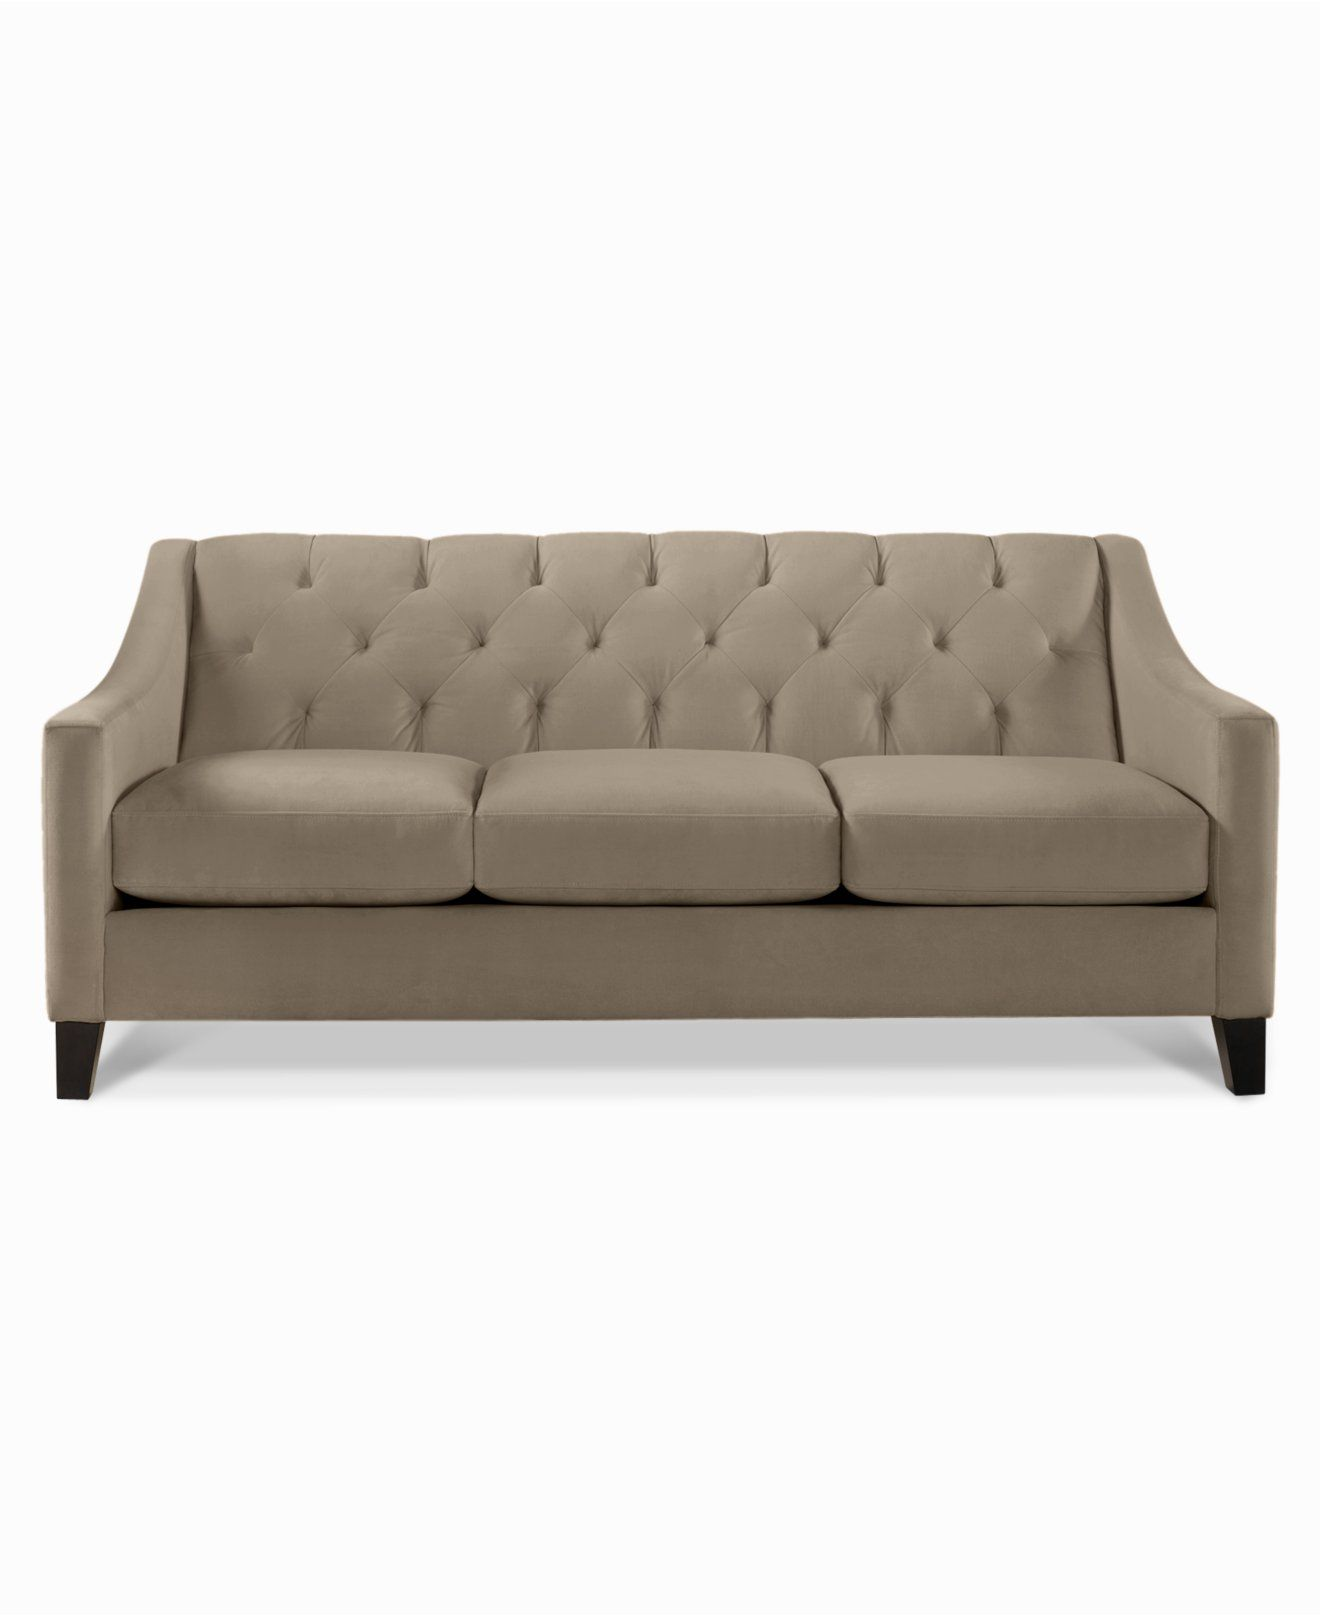 Chloe Velvet Tufted Sofa Couches Sofas Furniture Macy S